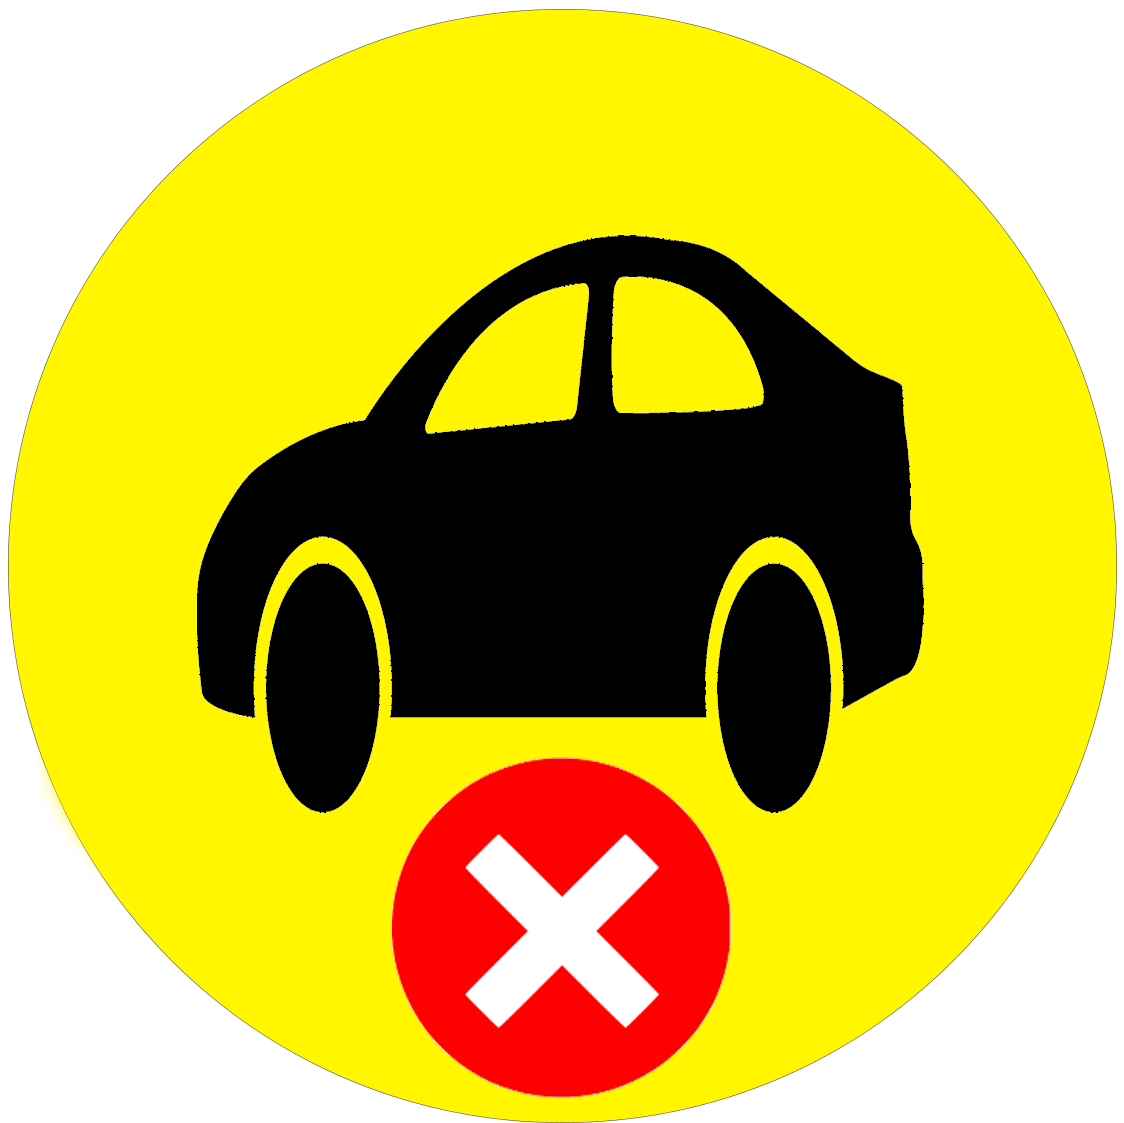 Car No icon